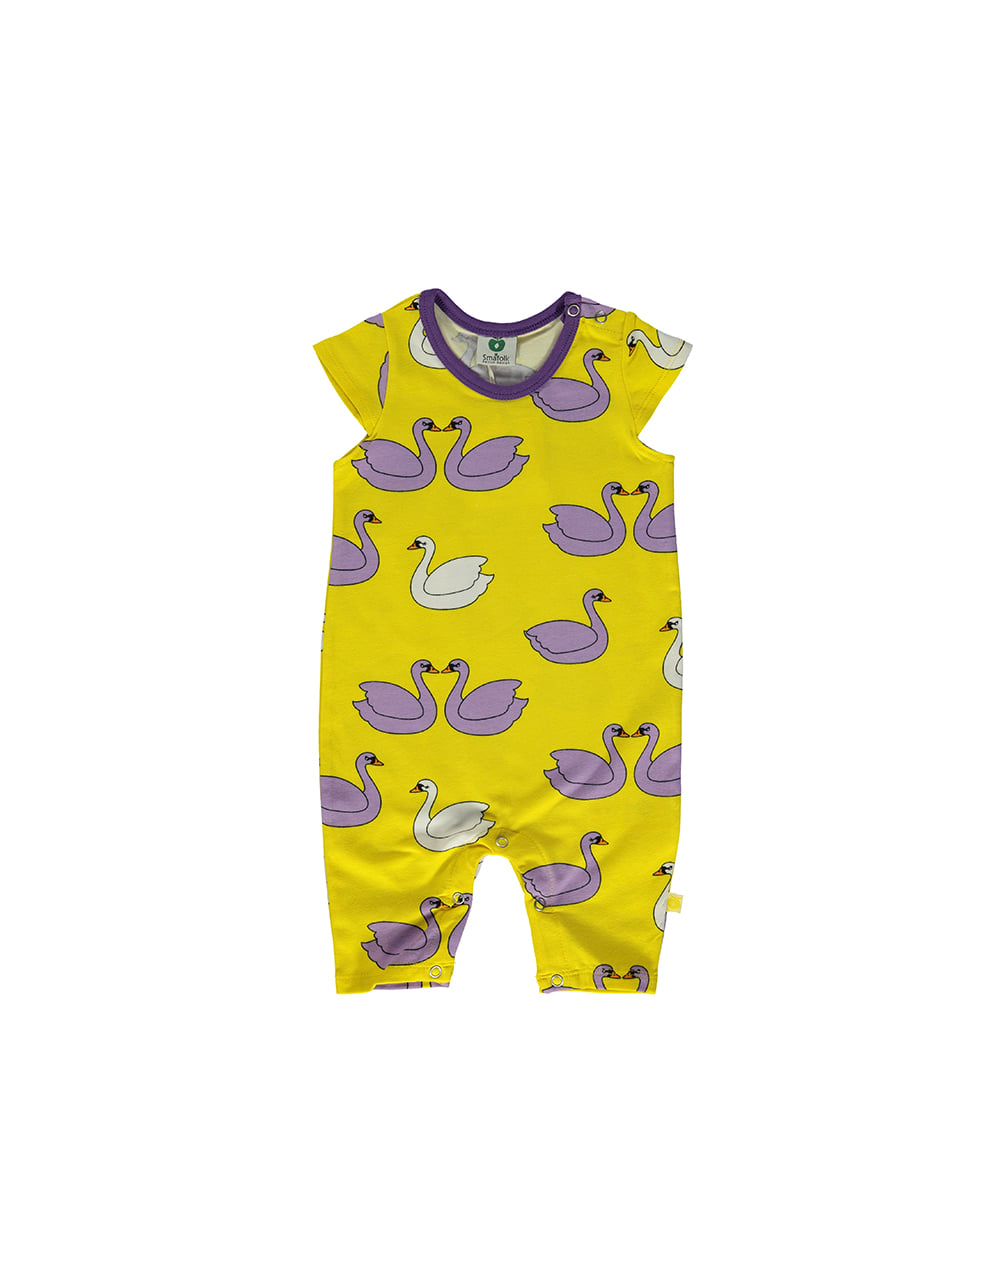 SMAFOLK  Summer Suit with Swans   Yellow